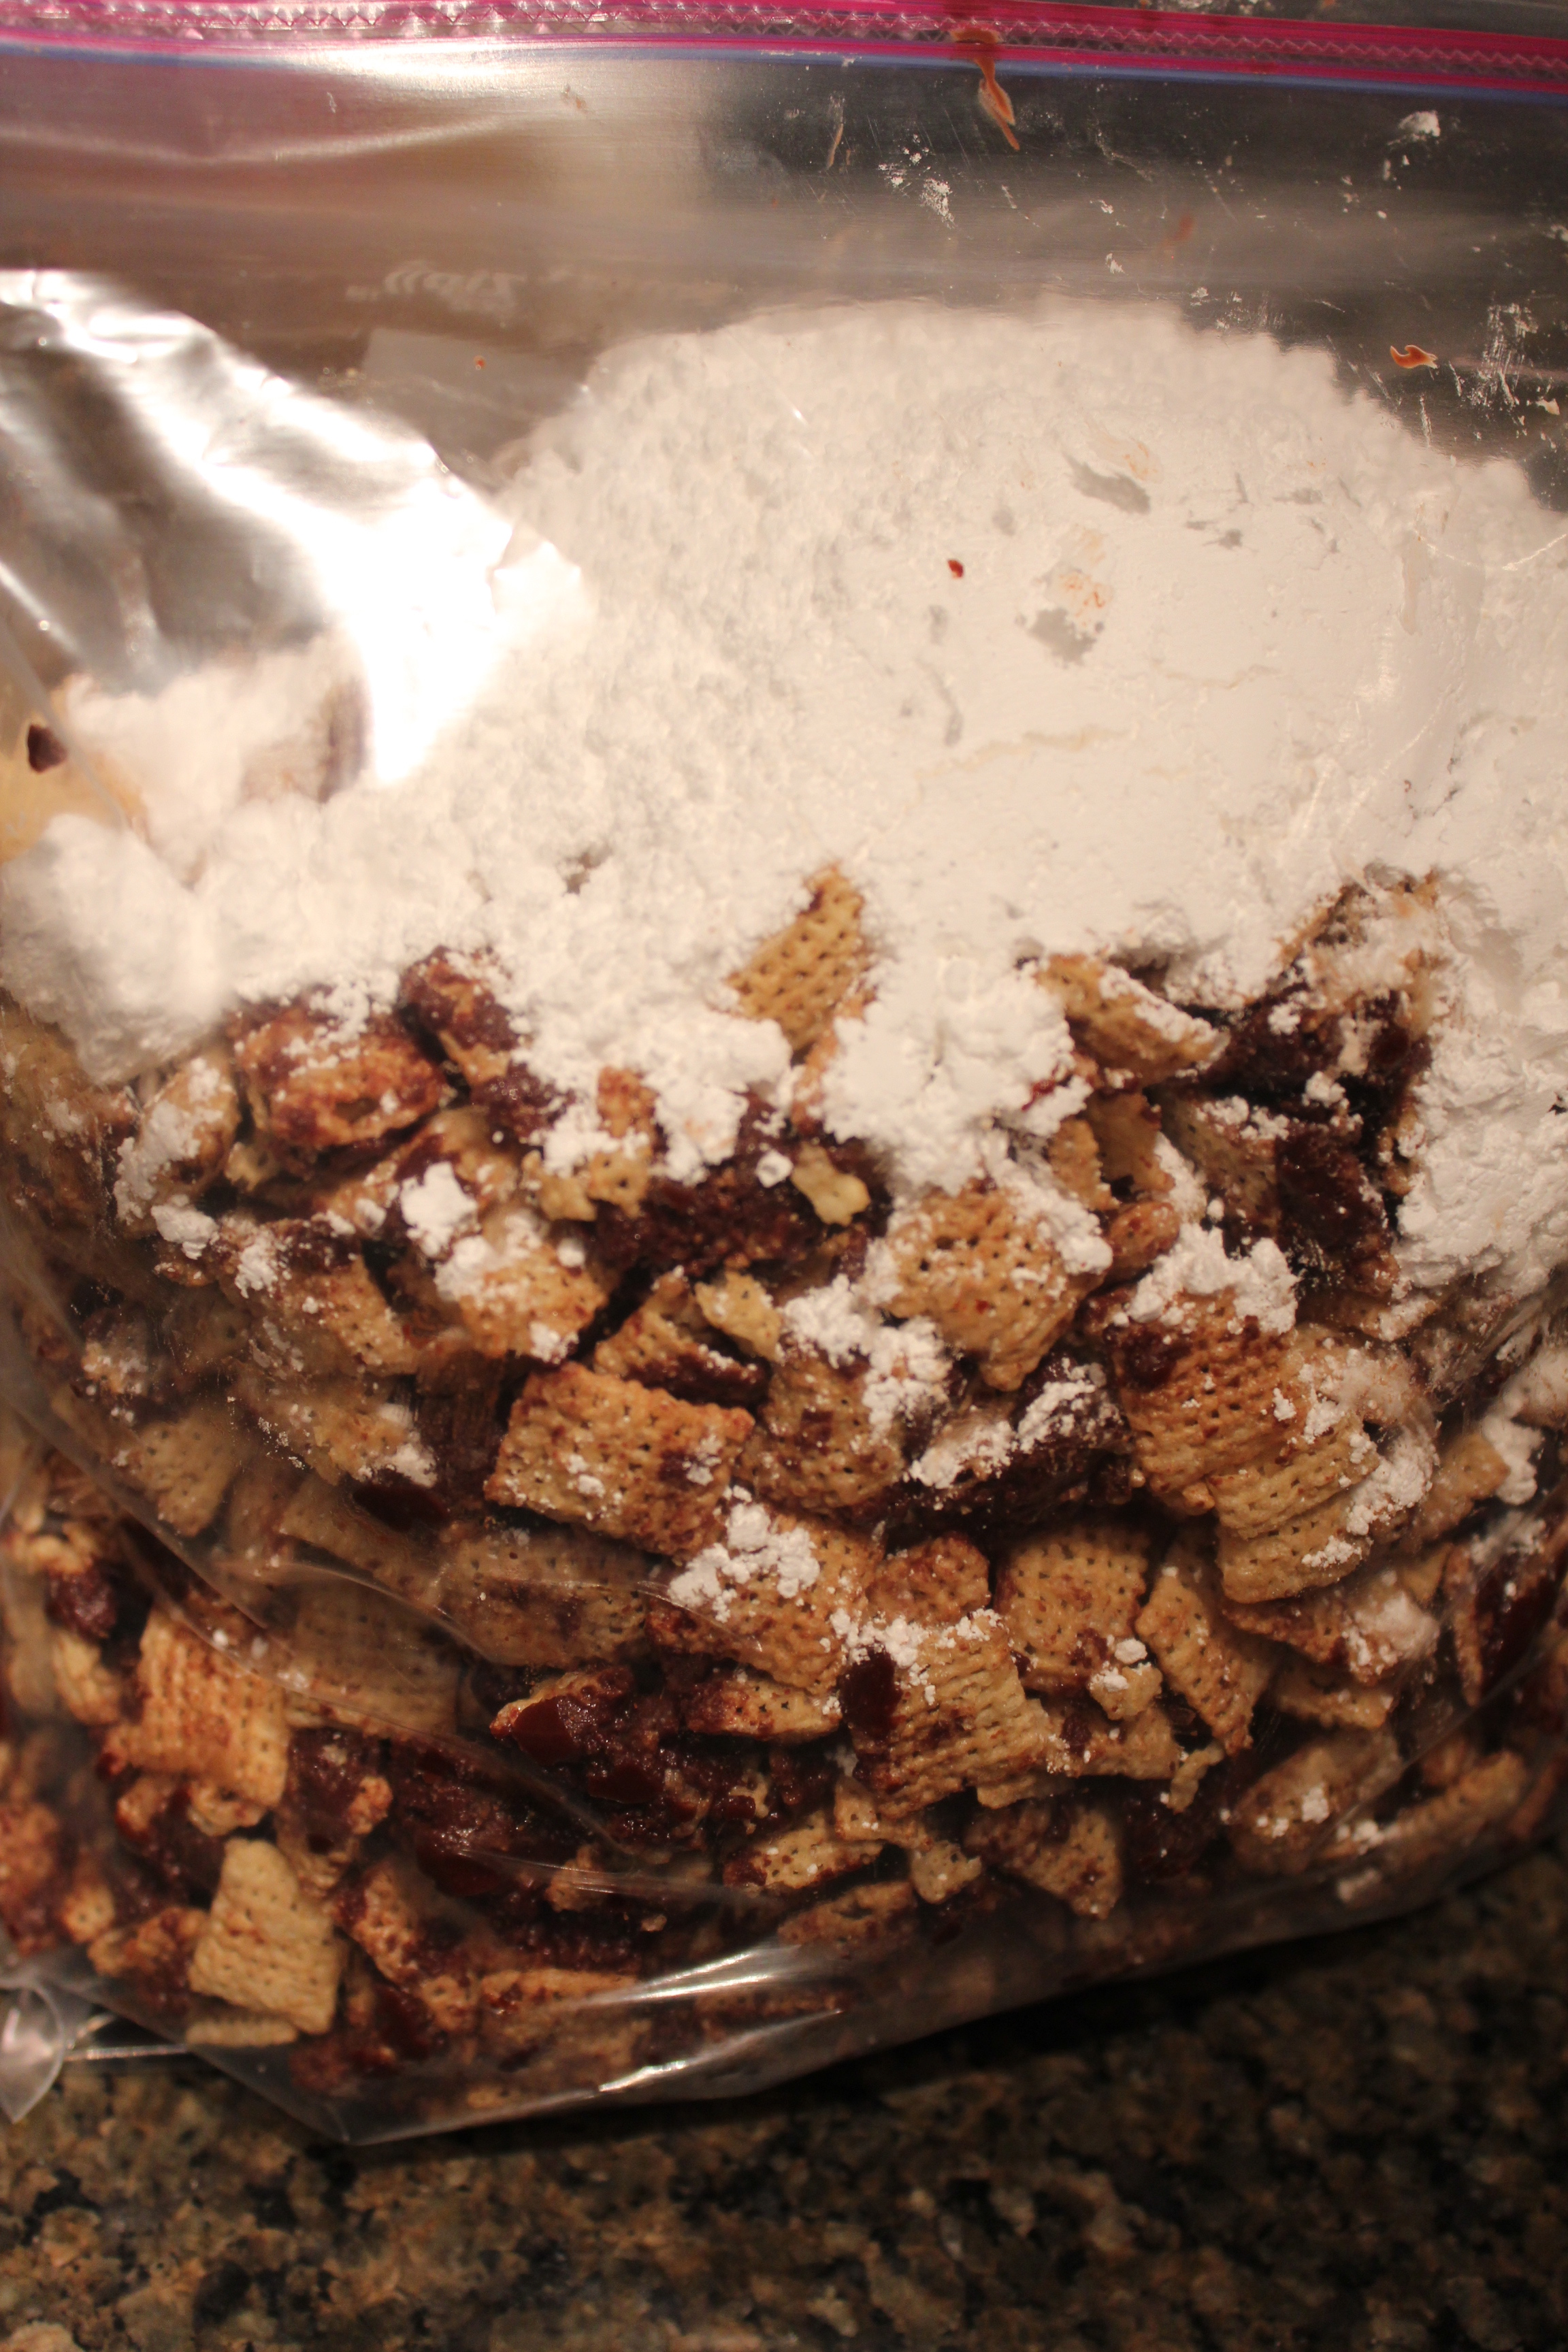 nutella muddy buddies, nutella puppy chow, nutella buddies, nutella chcolate chex, nutella dessert chex, recipes, food